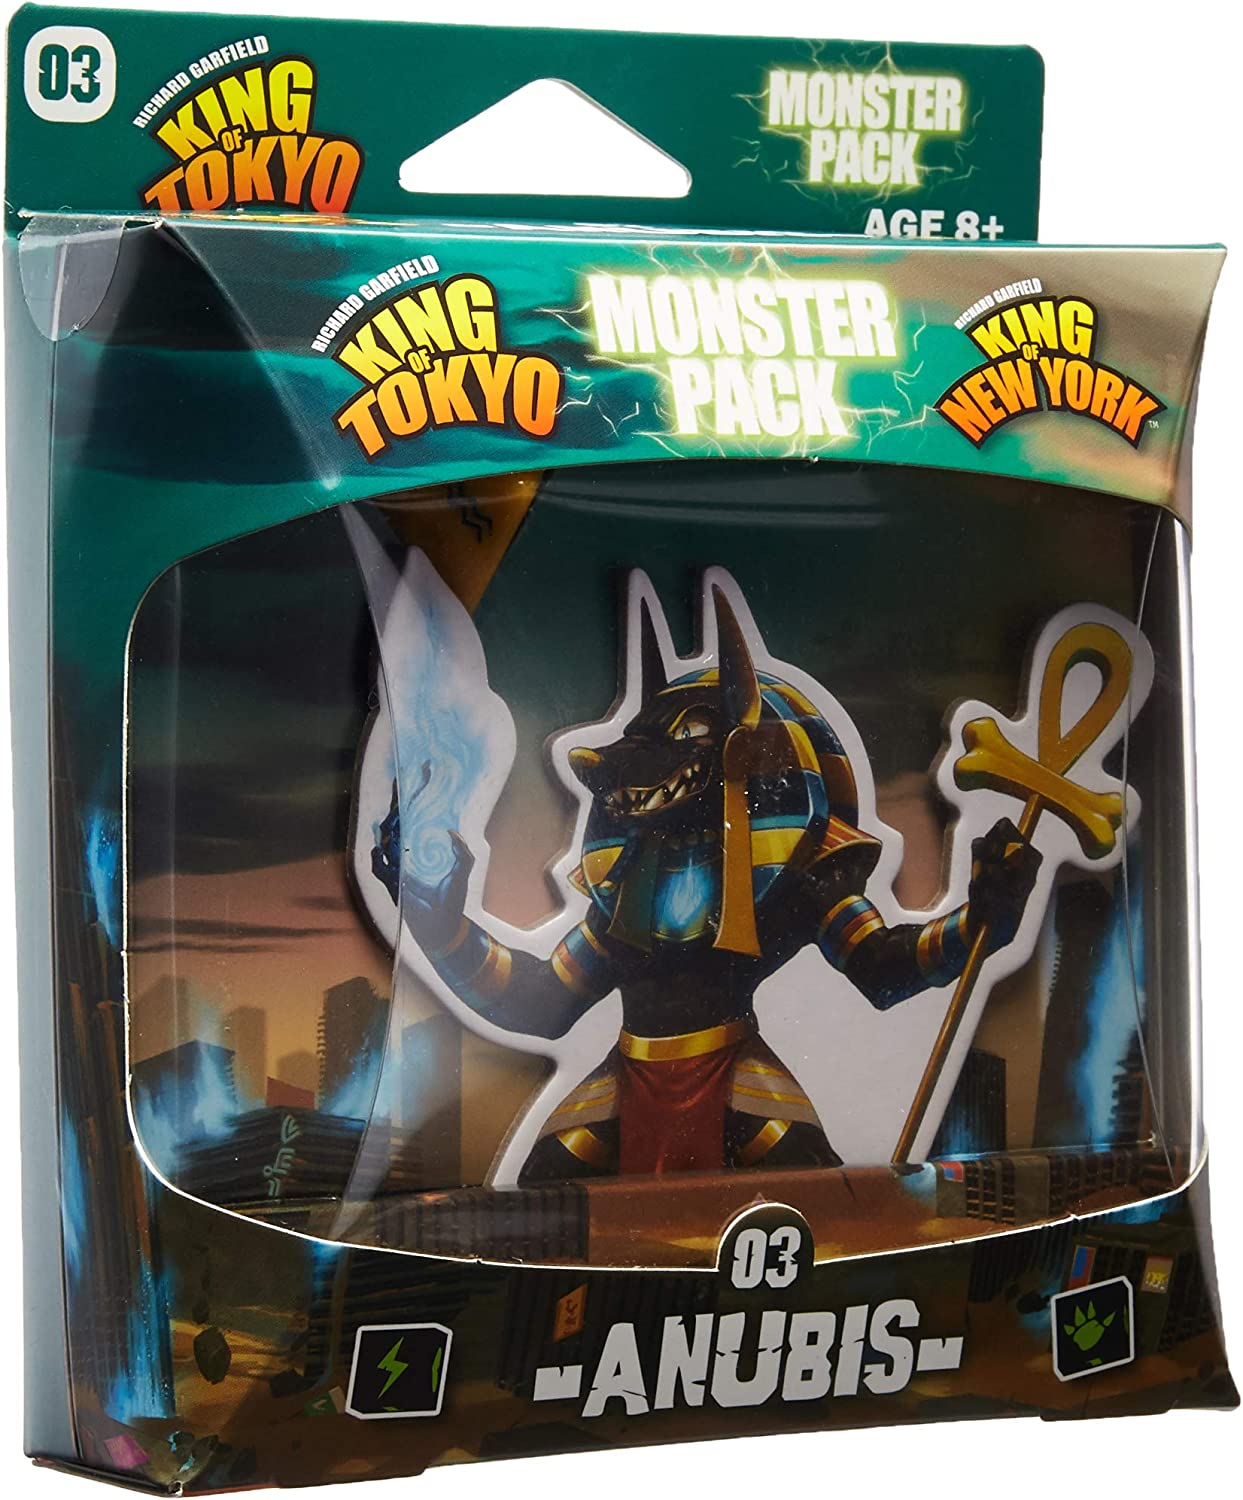 IELLO KOT_MP_Anu King of Tokyo Anubis Monster Pack Juego de Mesa ...